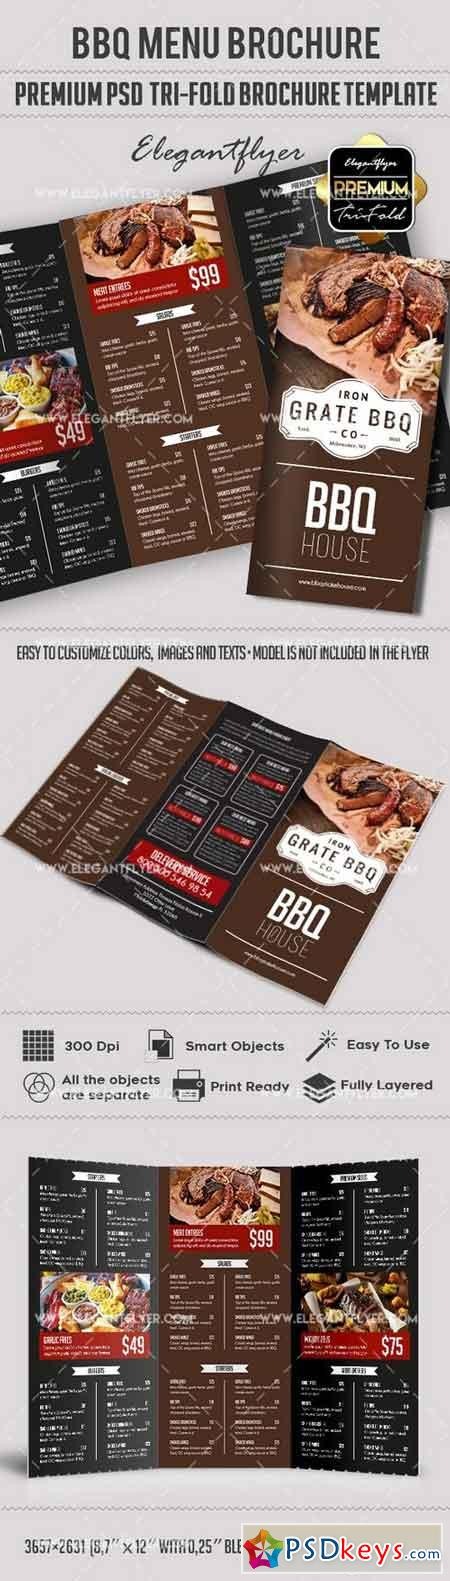 bbq menu premium tri fold psd brochure template food menu free download photoshop vector. Black Bedroom Furniture Sets. Home Design Ideas